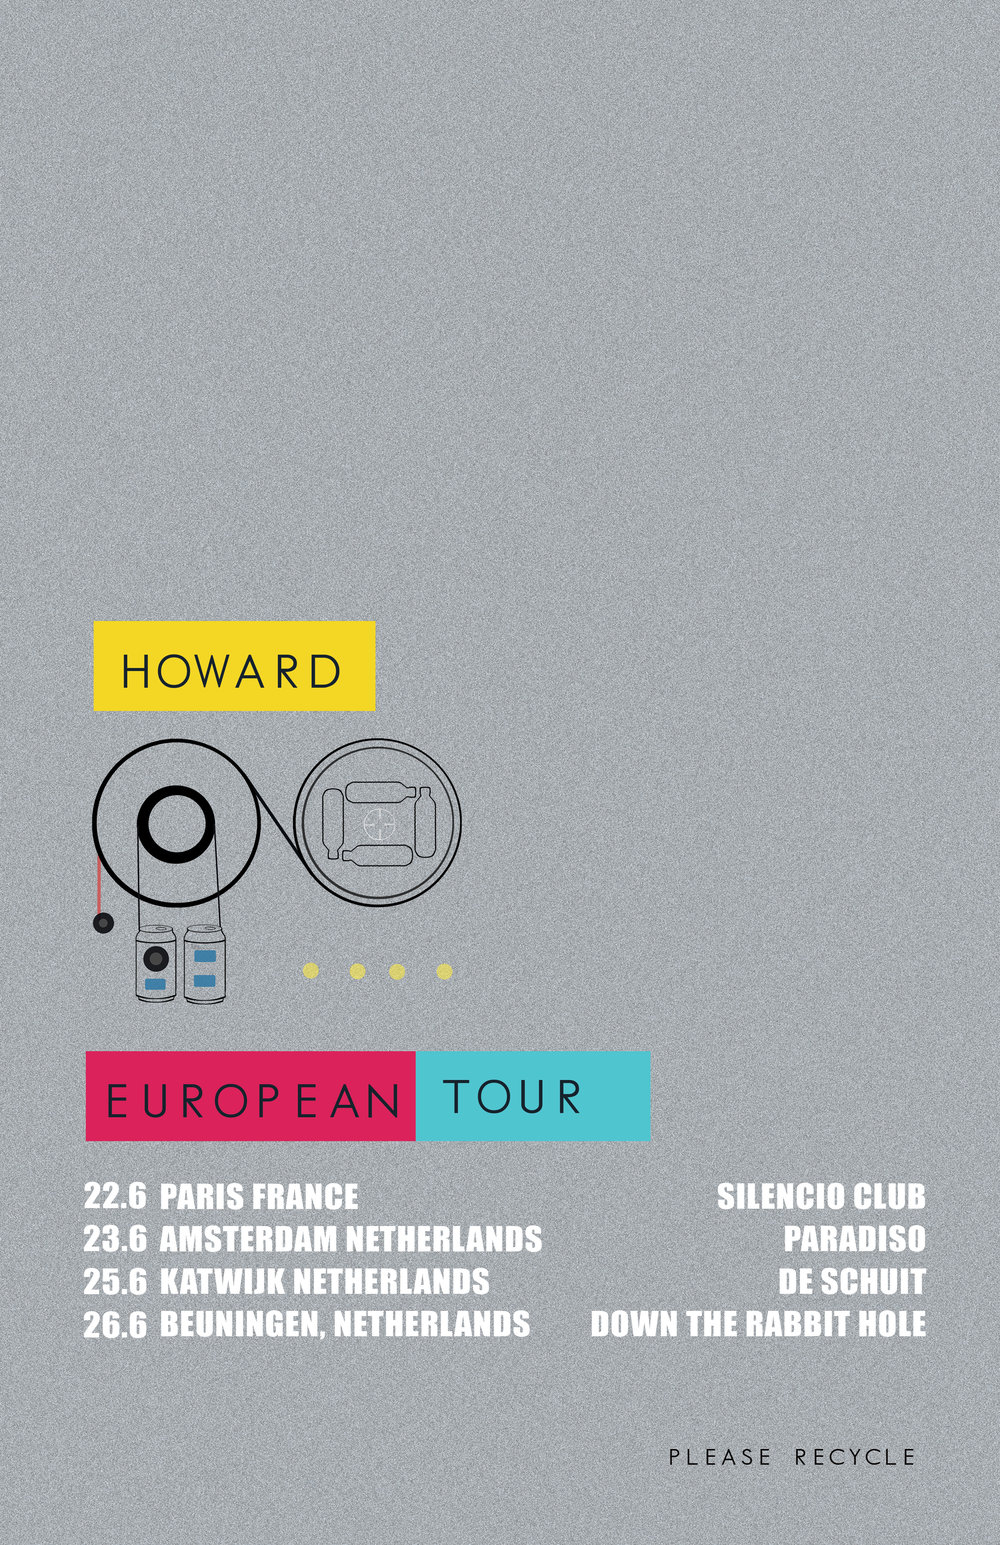 Howard-PR-Europe-Tour-V2.jpg